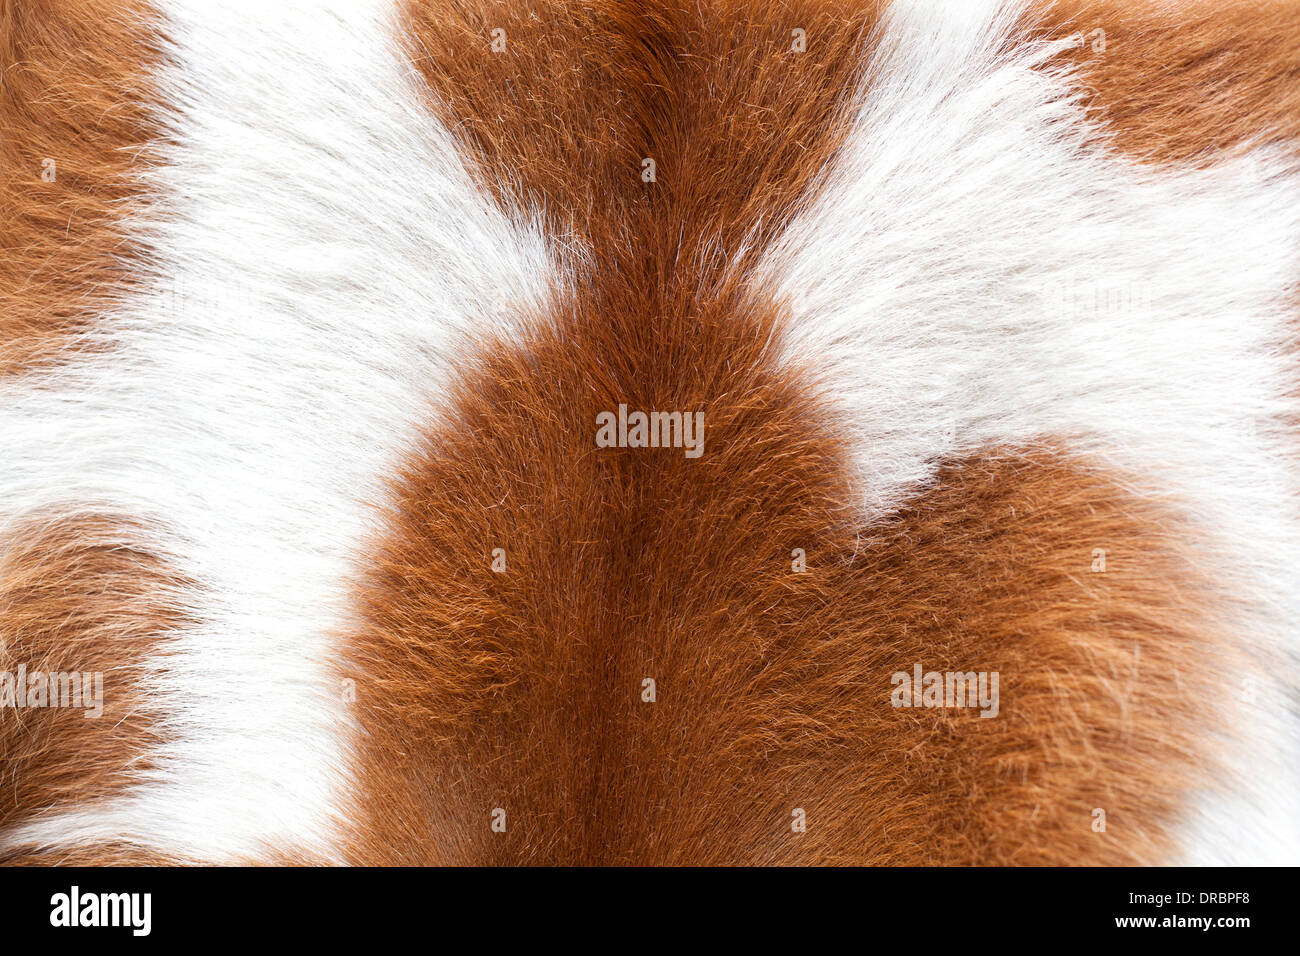 Brown and white cow fur background - Stock Image